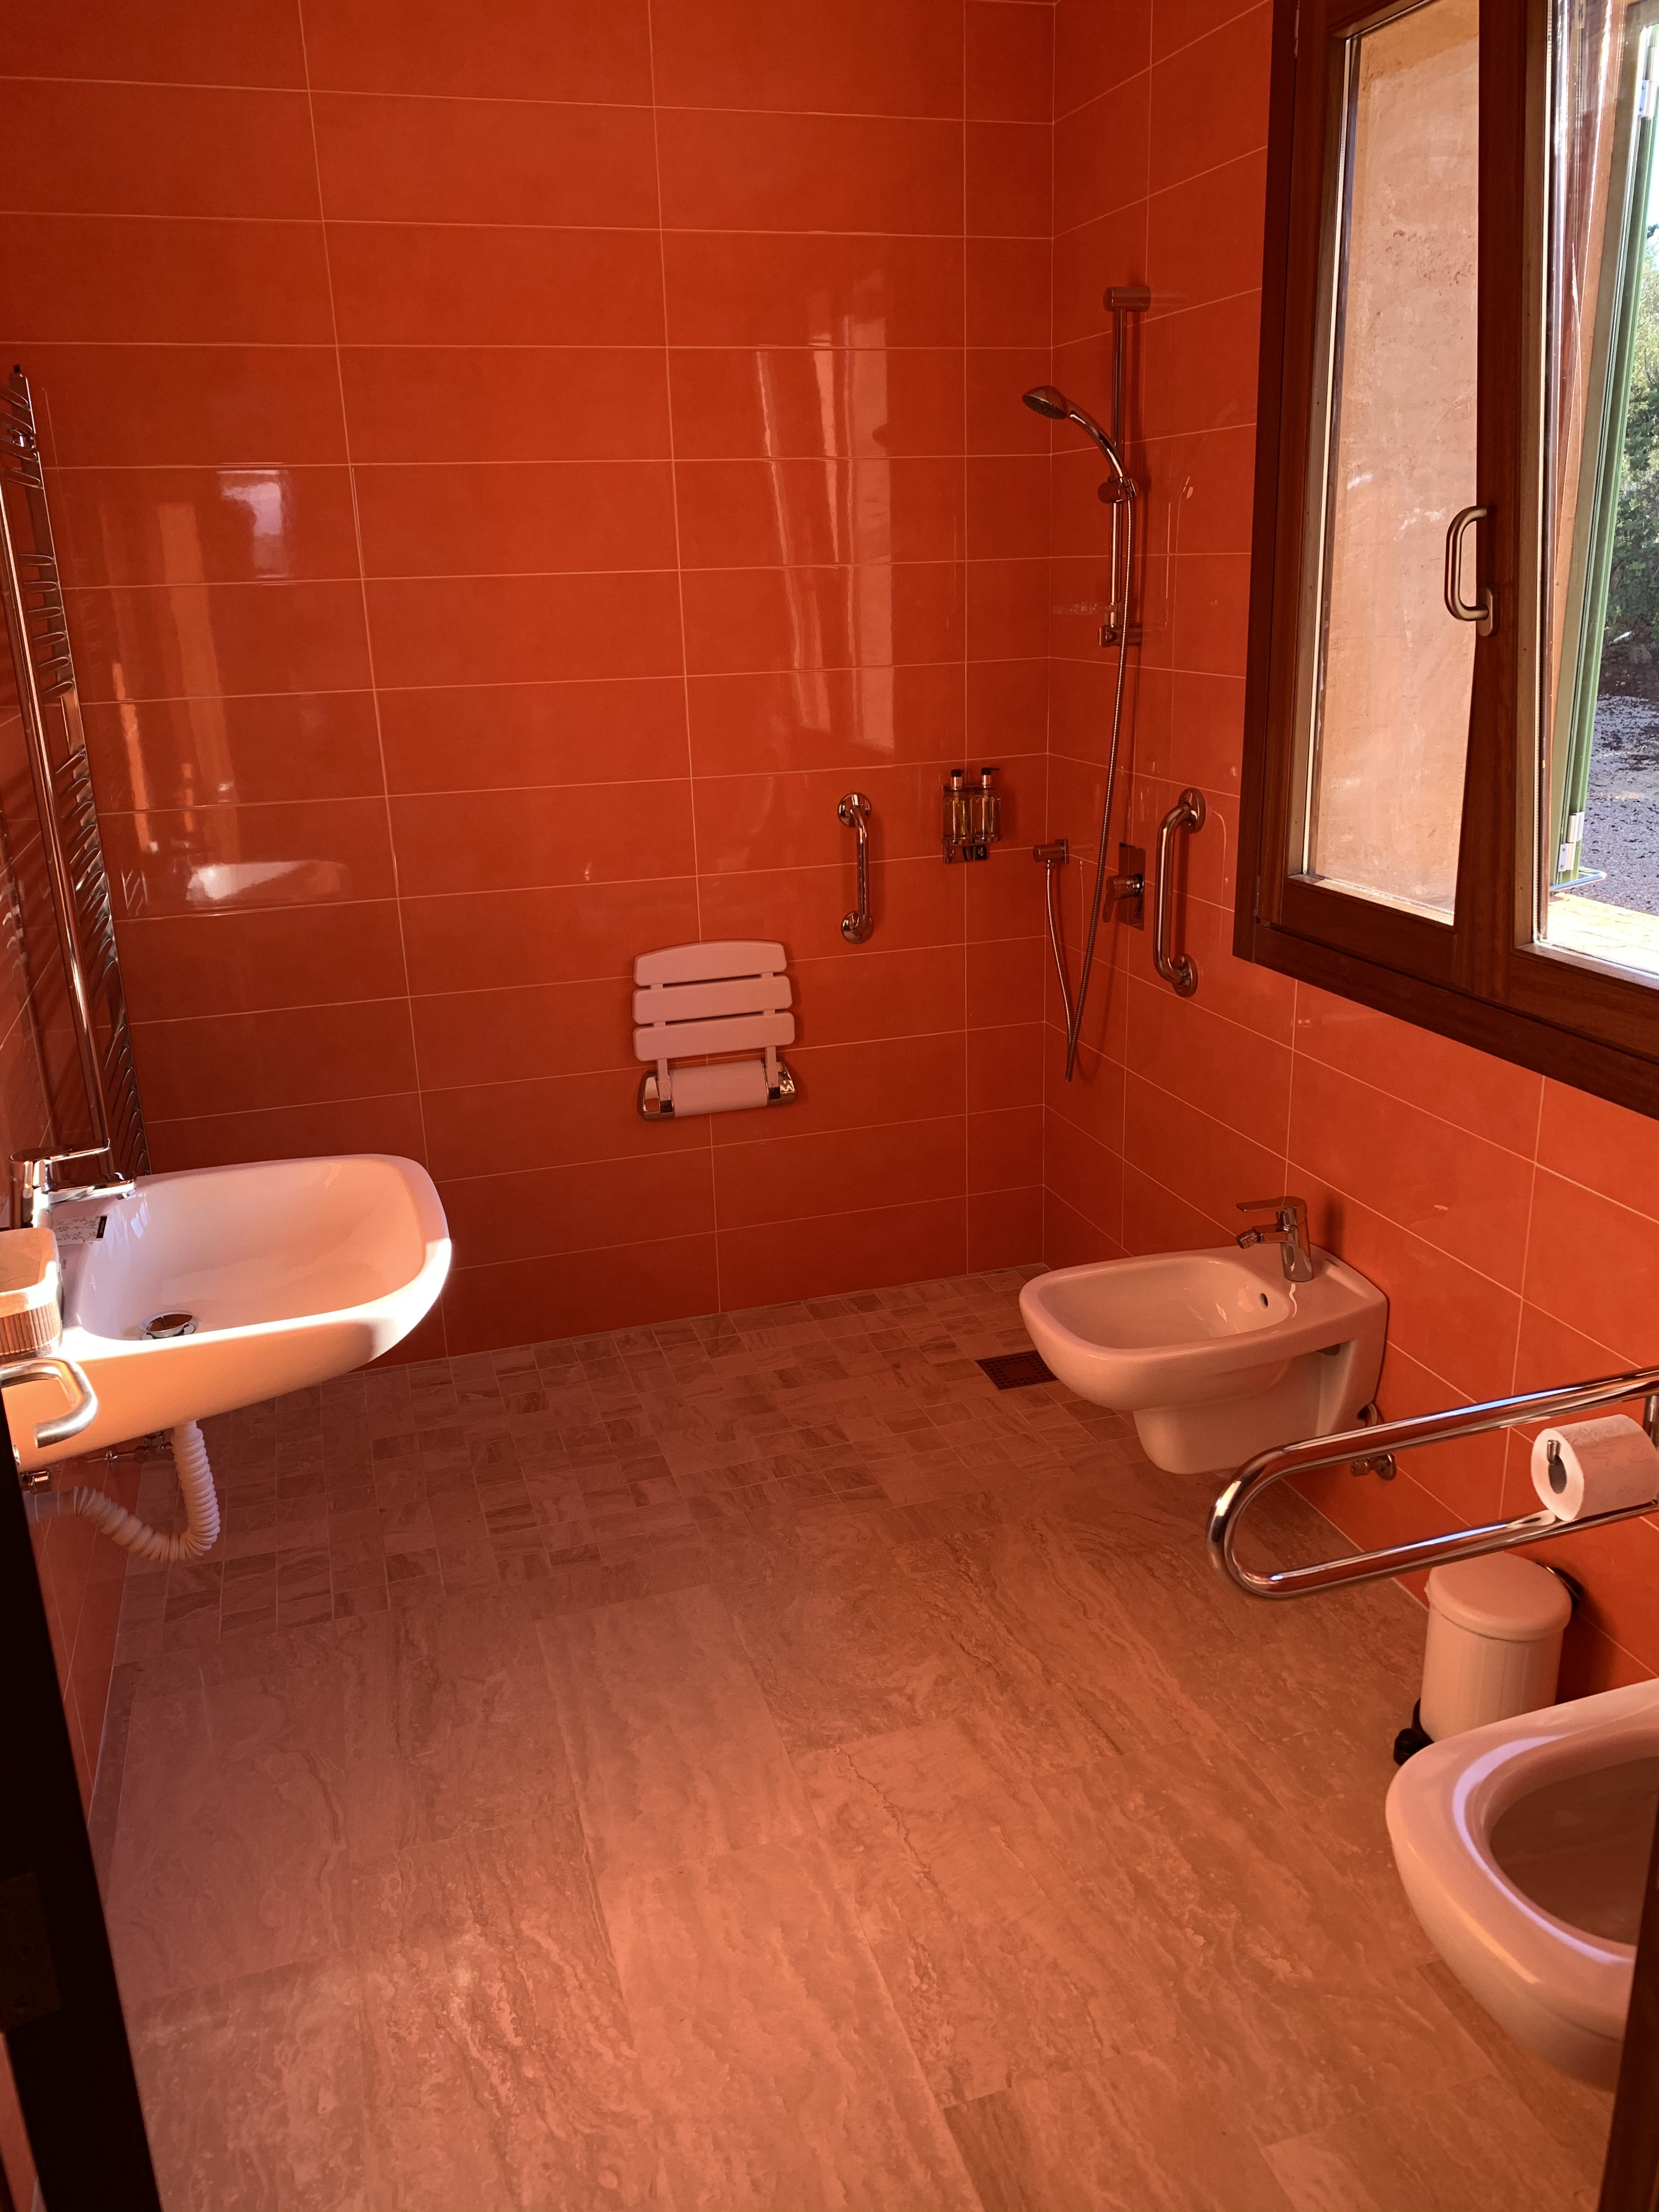 Ensuite bathroom with disabled facilities to bedroom 5 downstairs